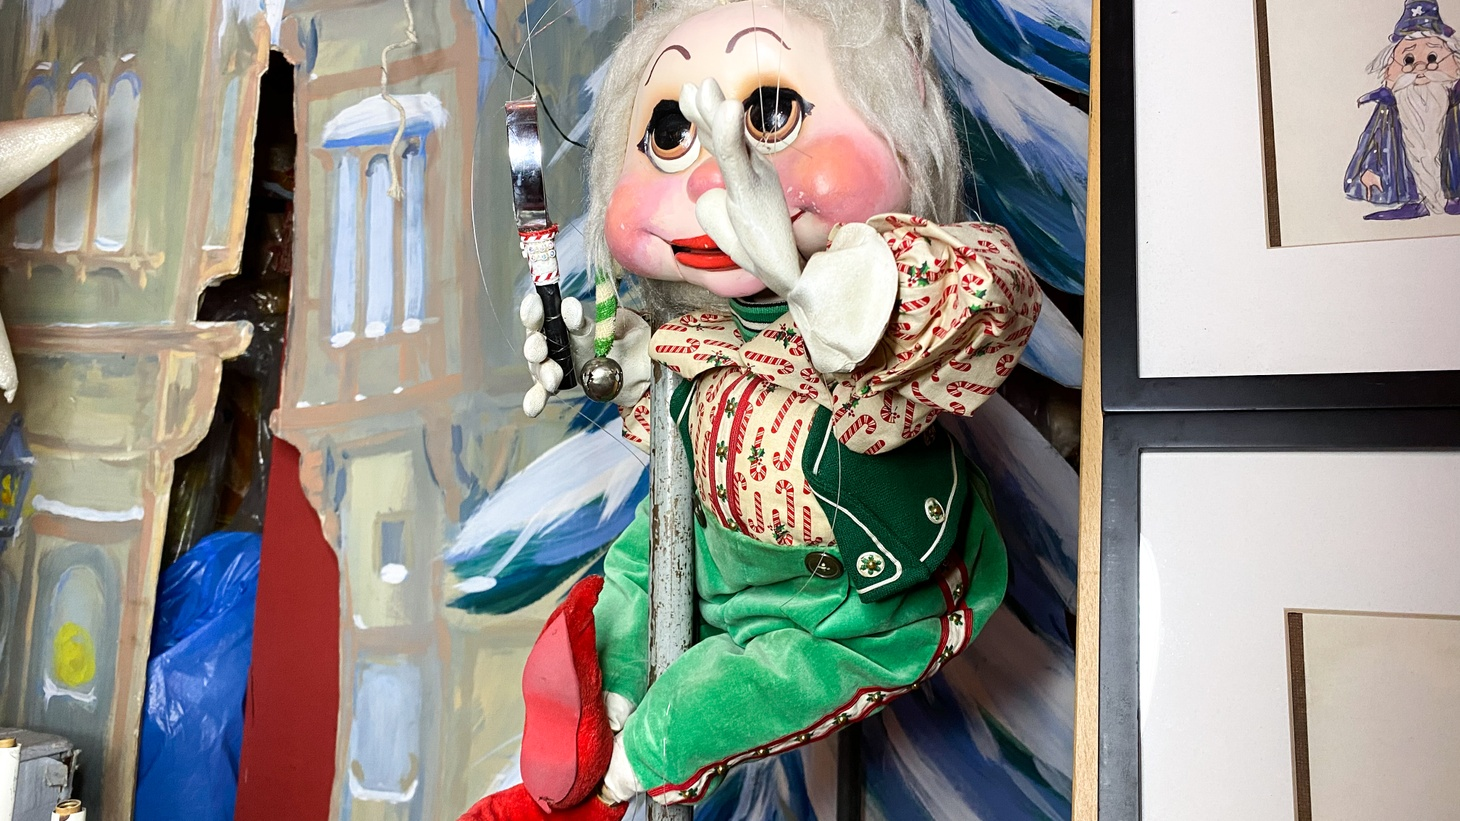 One of the puppets at Bob Baker Marionette Theater. Photo by Angel Carreras.